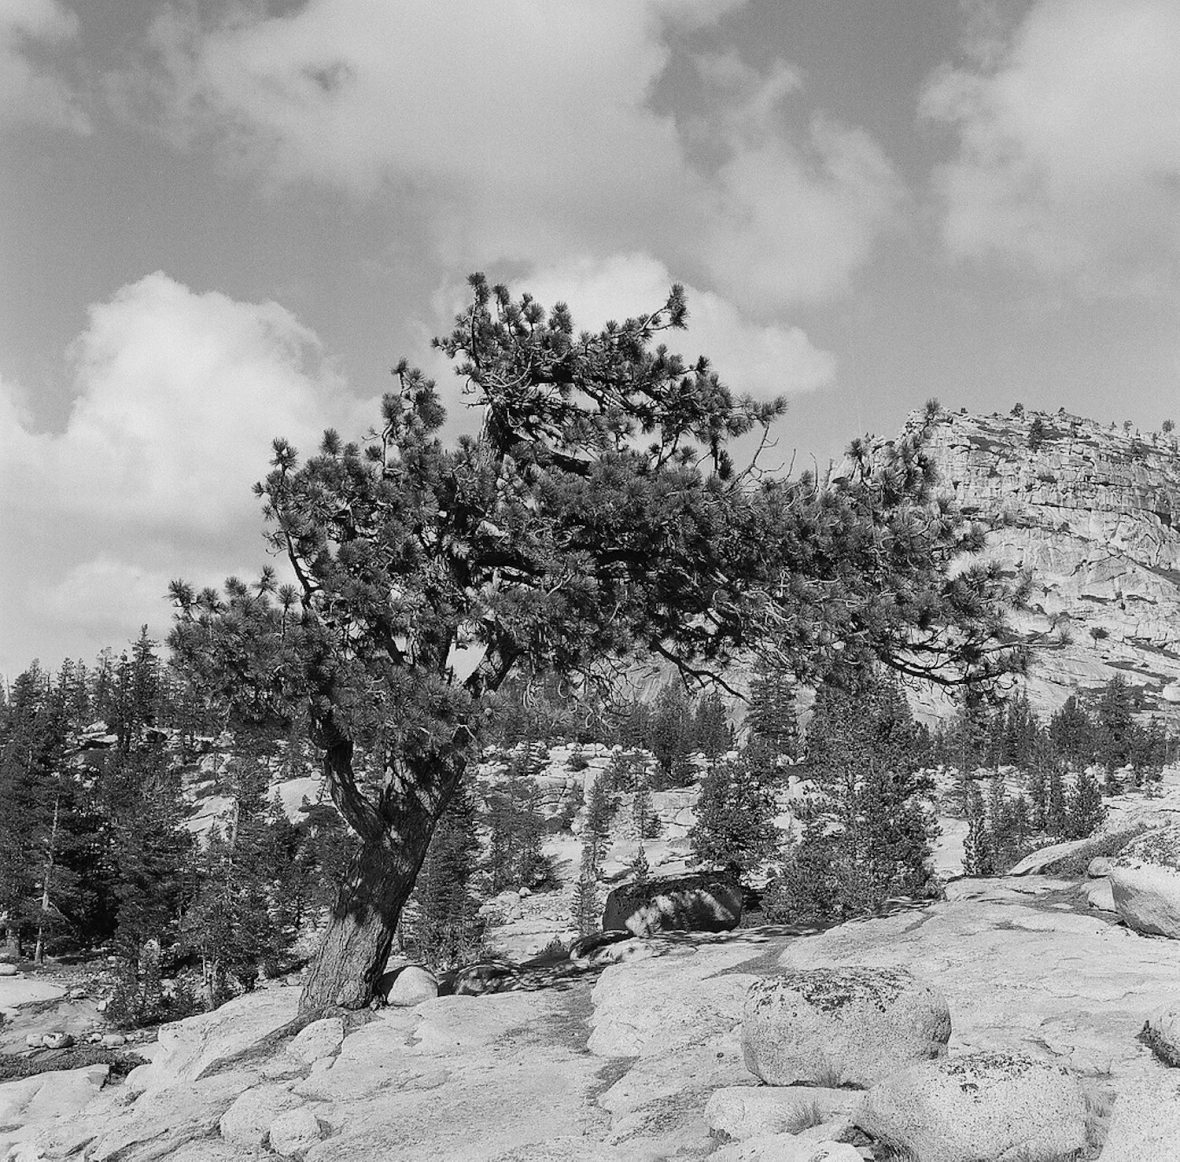 Medium format 120mm monochrome film photography Tree in Yosemite National Park